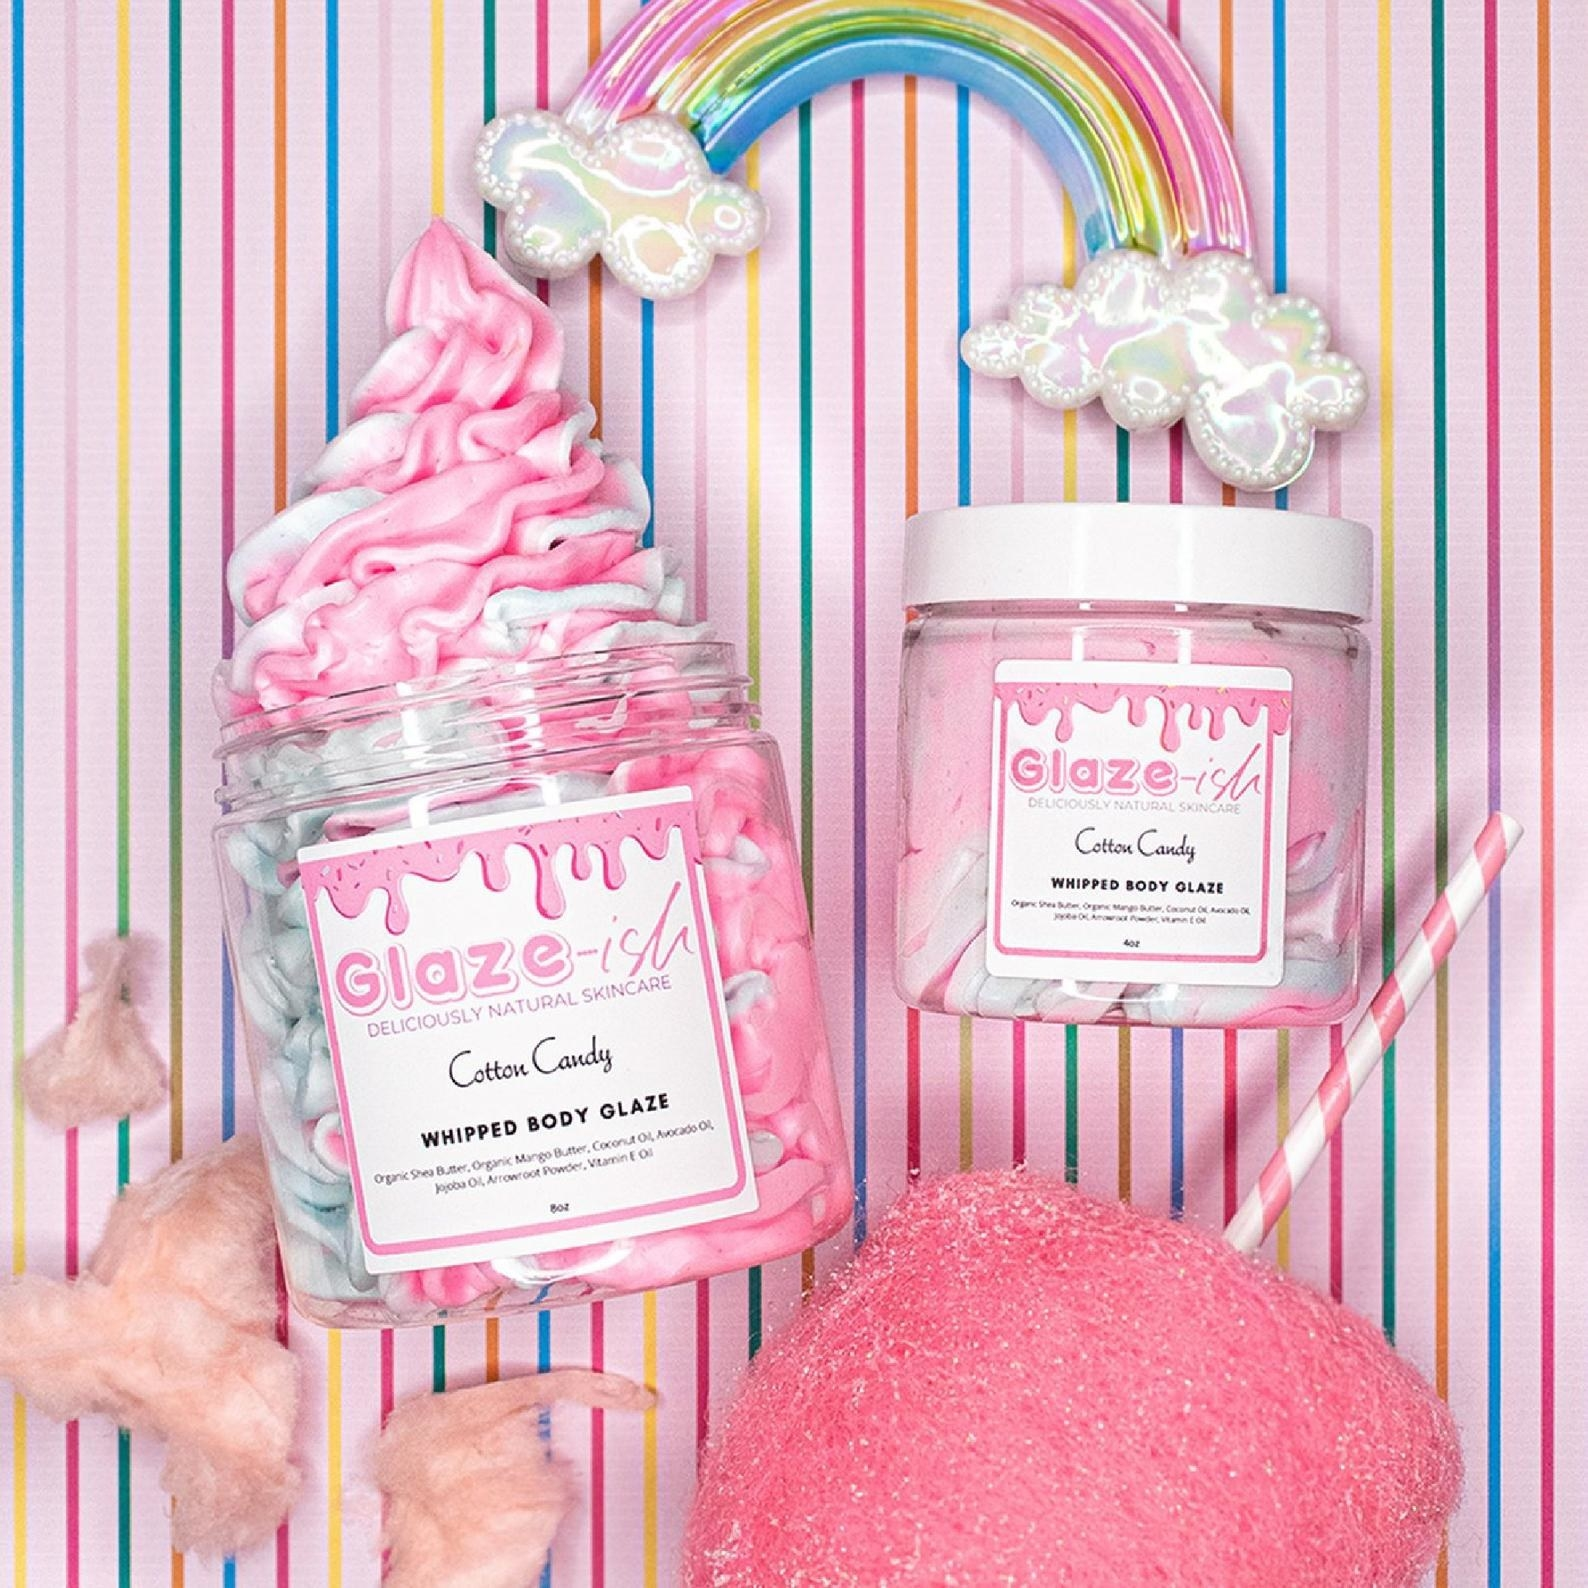 a pink and white swirled body butter in a jar next to candy and rainbows